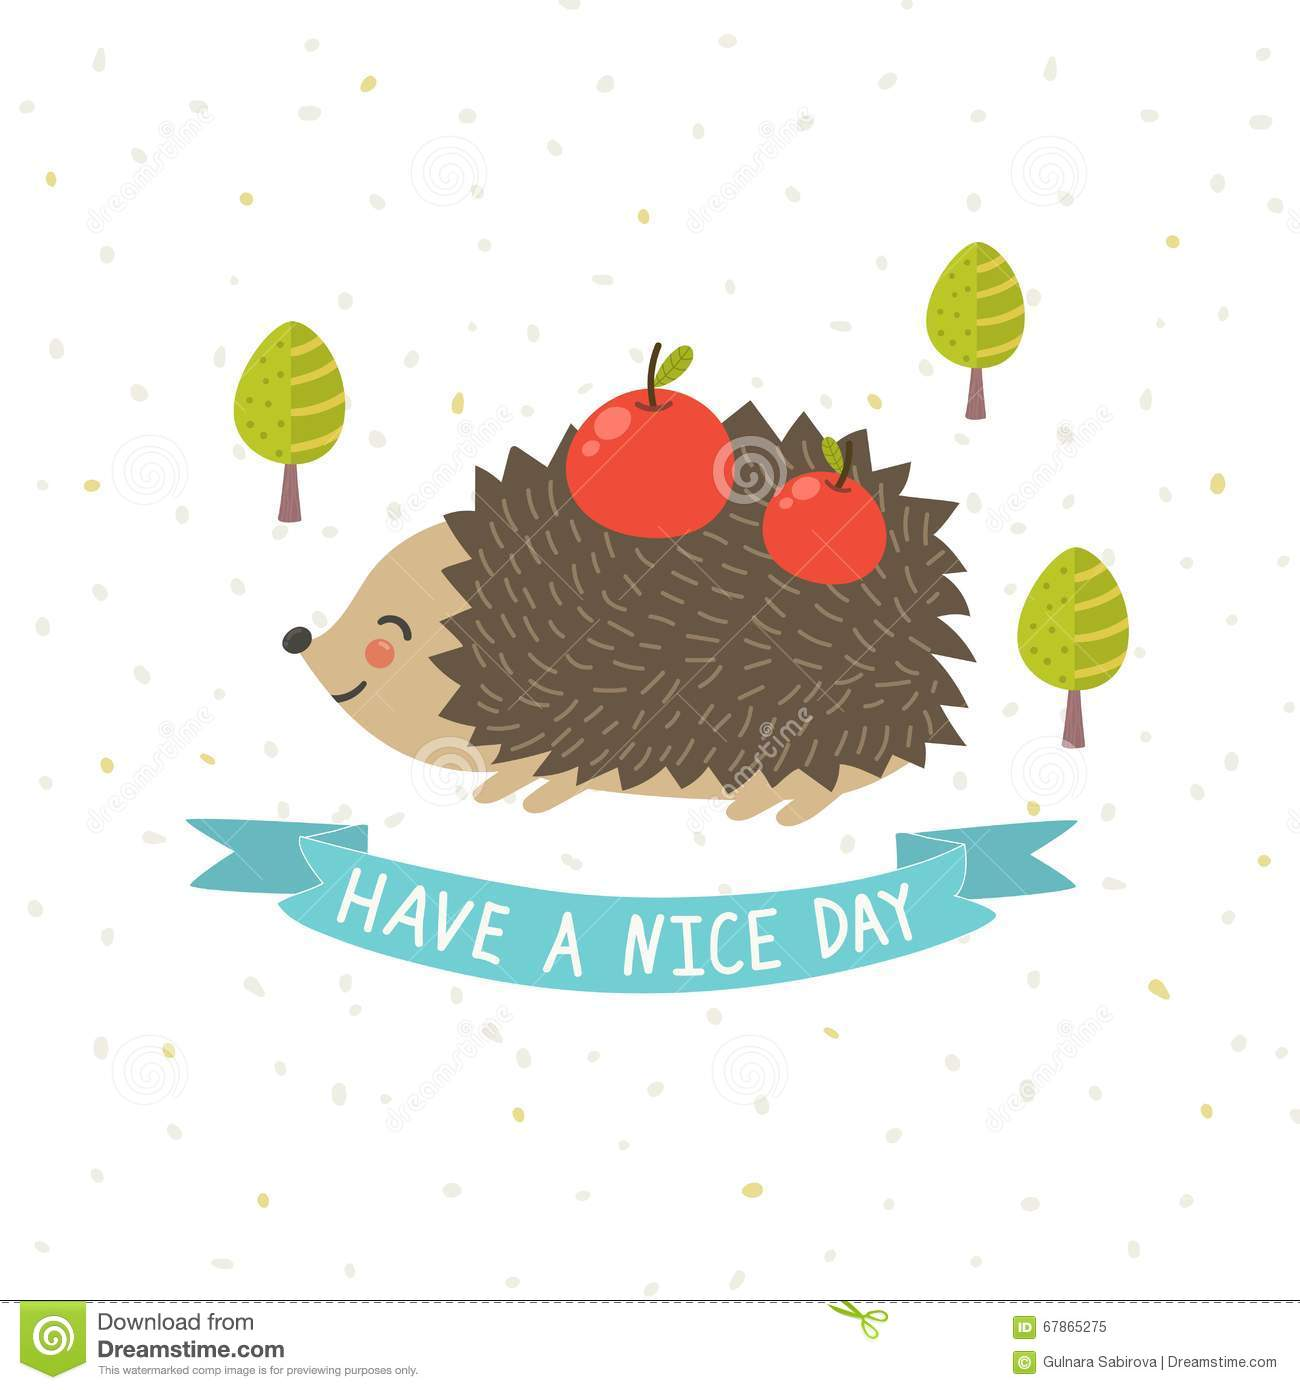 Have a nice day card with a cute hedgehog stock vector have a nice day card with a cute hedgehog m4hsunfo